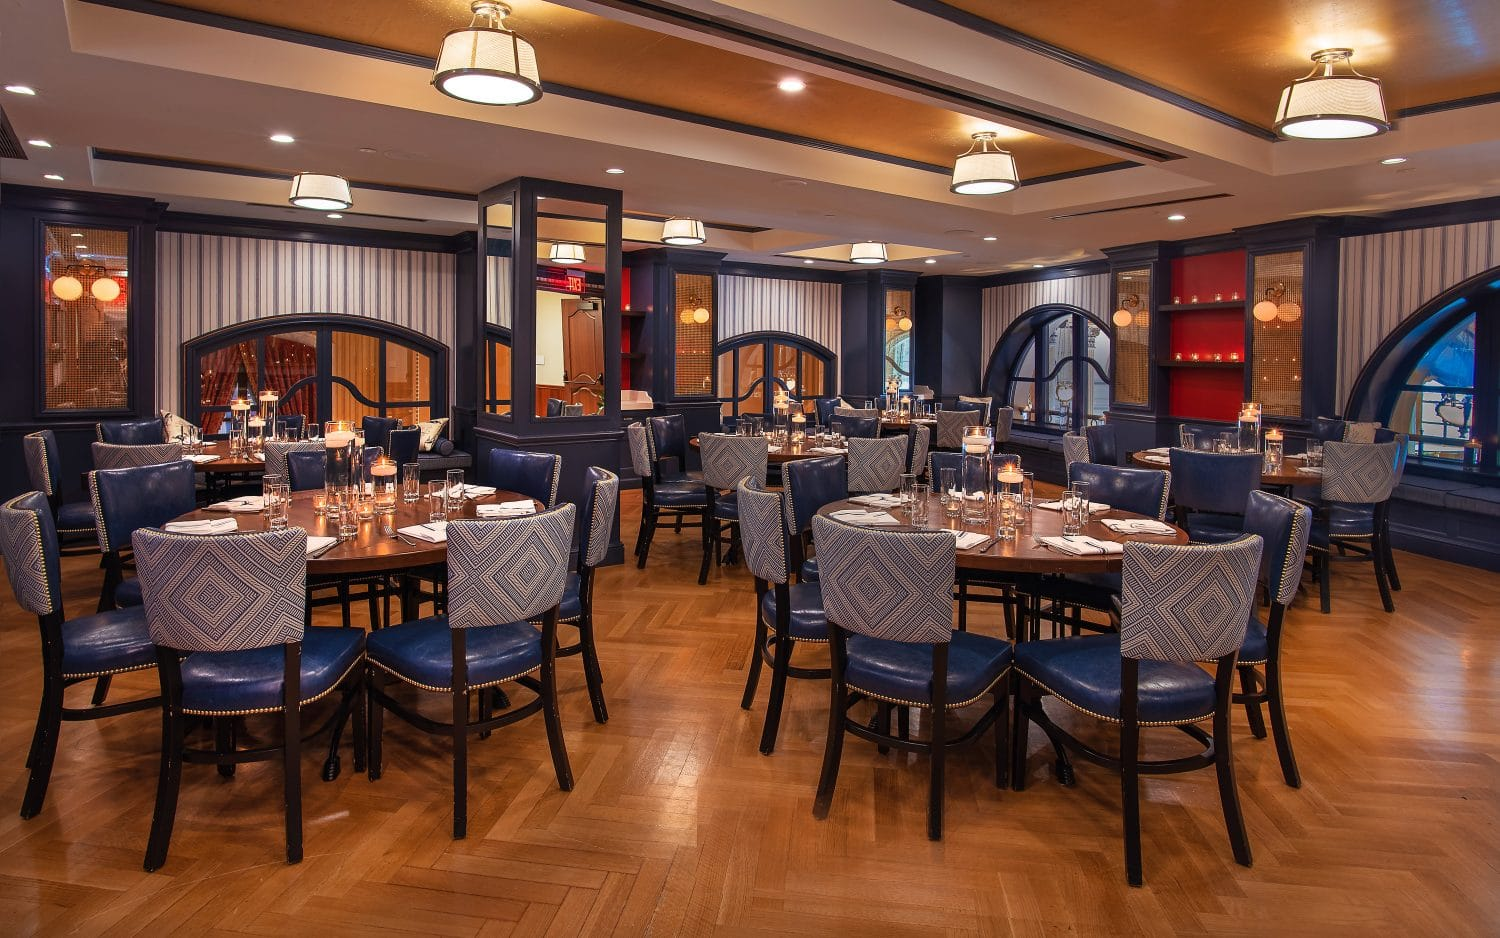 Pershing Private Dining Room event space at Café du Parc at The Willard InterContinental Hotel in Washington DC, Maryland, Virginia, DC Area